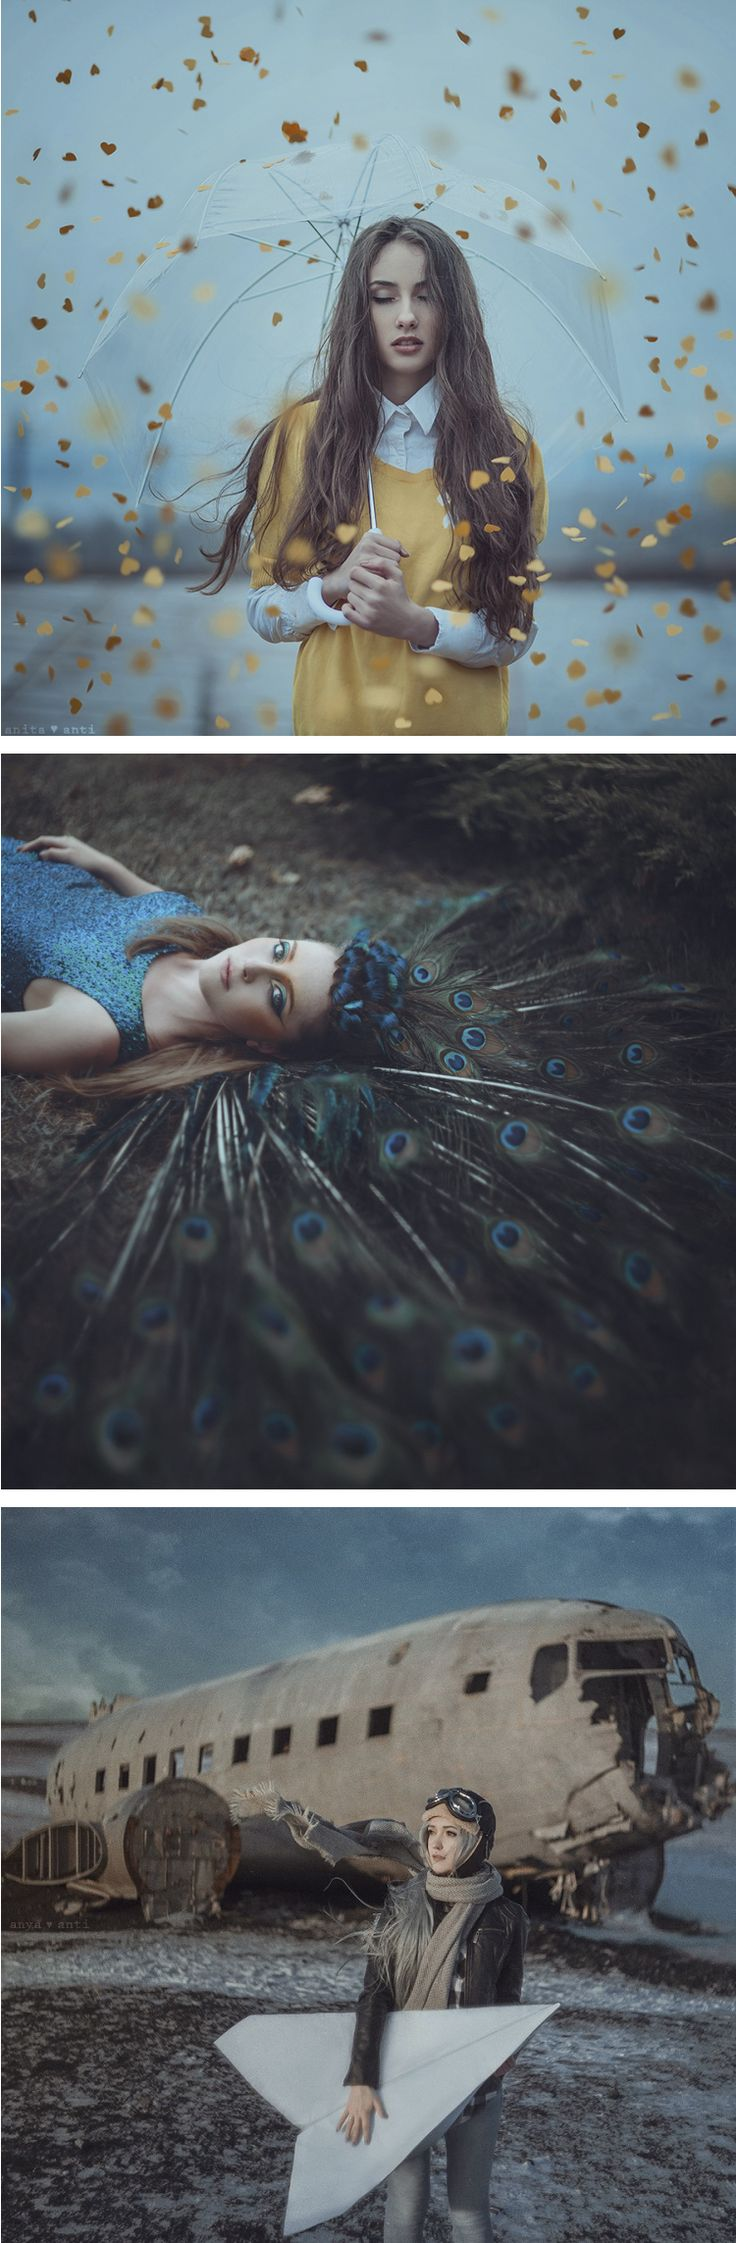 Anya Anti brings fantasy to life in her fine art conceptual photography.